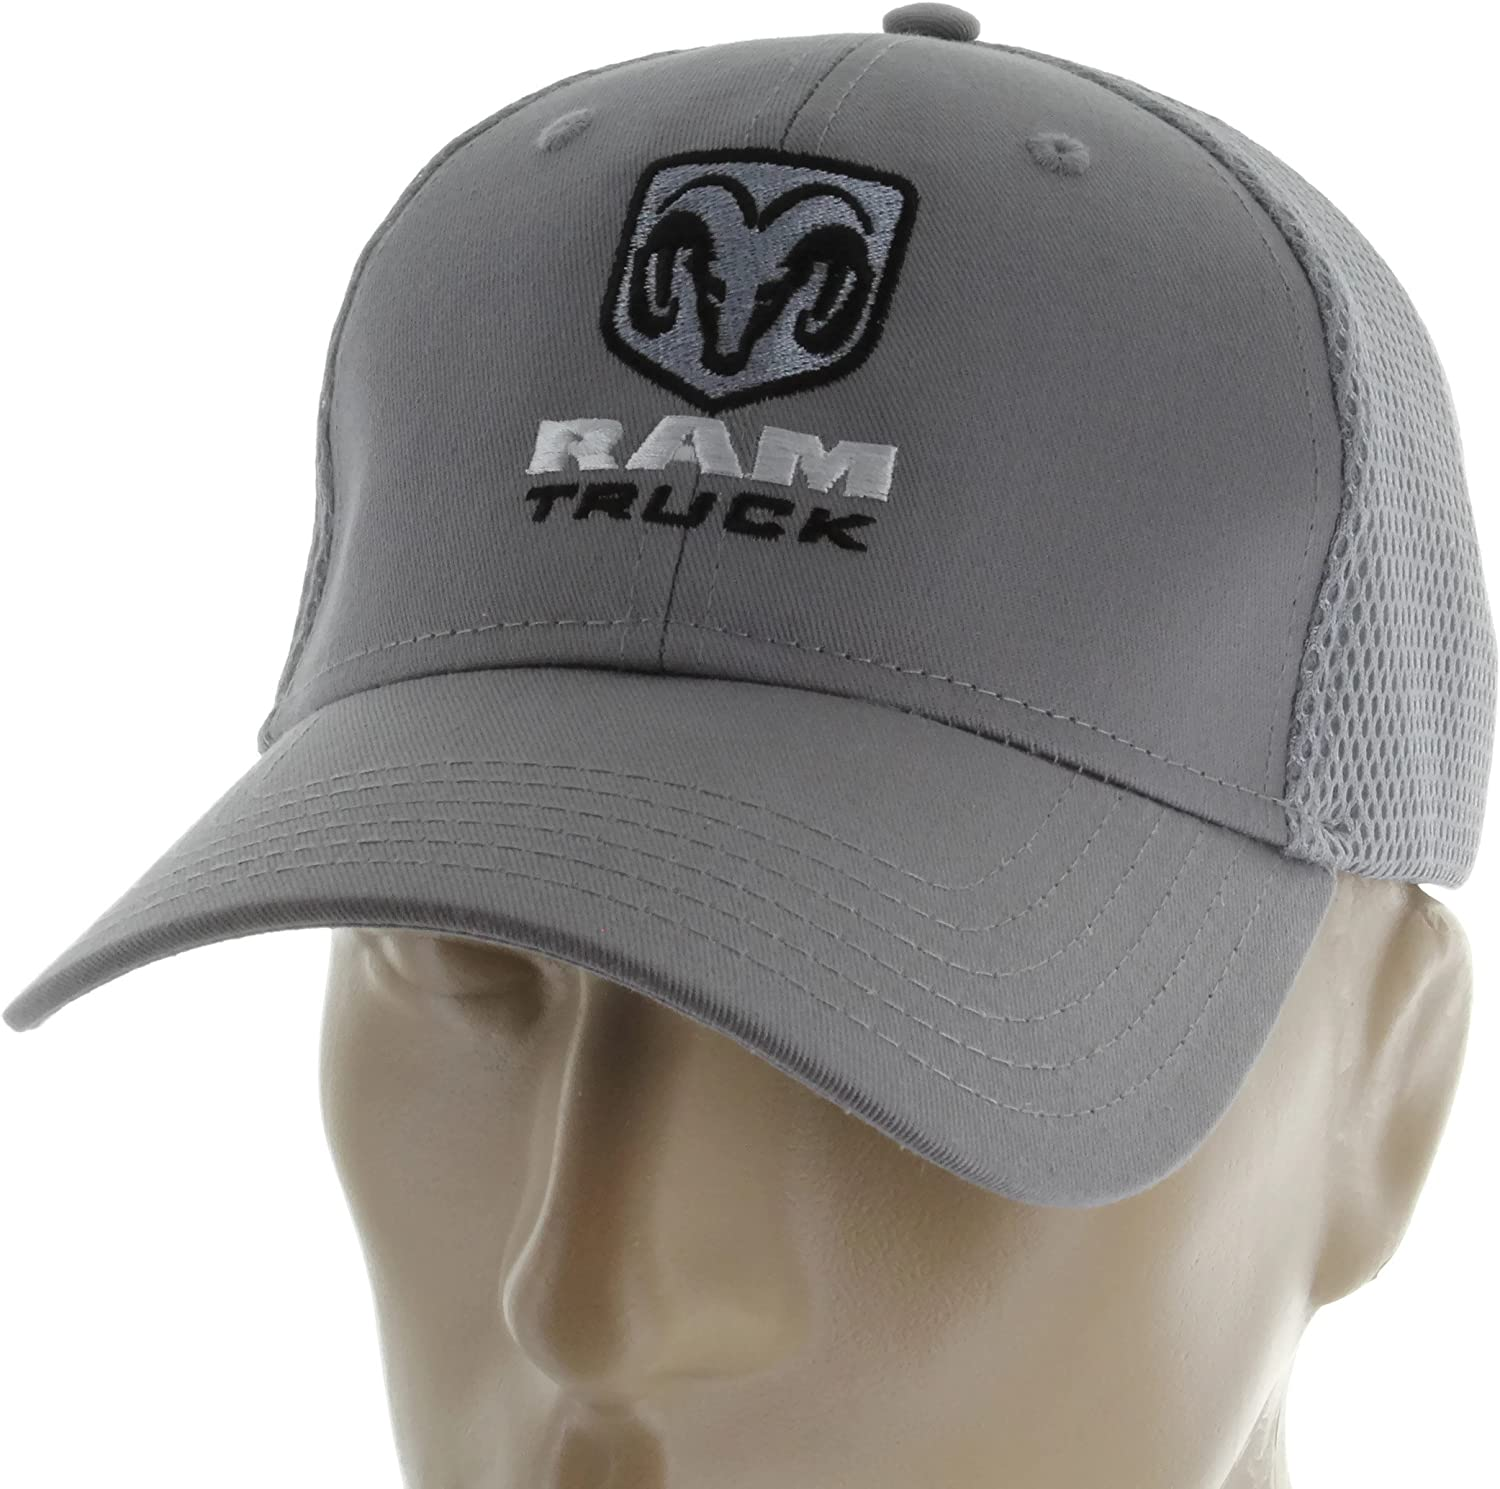 The Dodge Ram Stitched on the front Cap Embroidered Dodge Hat